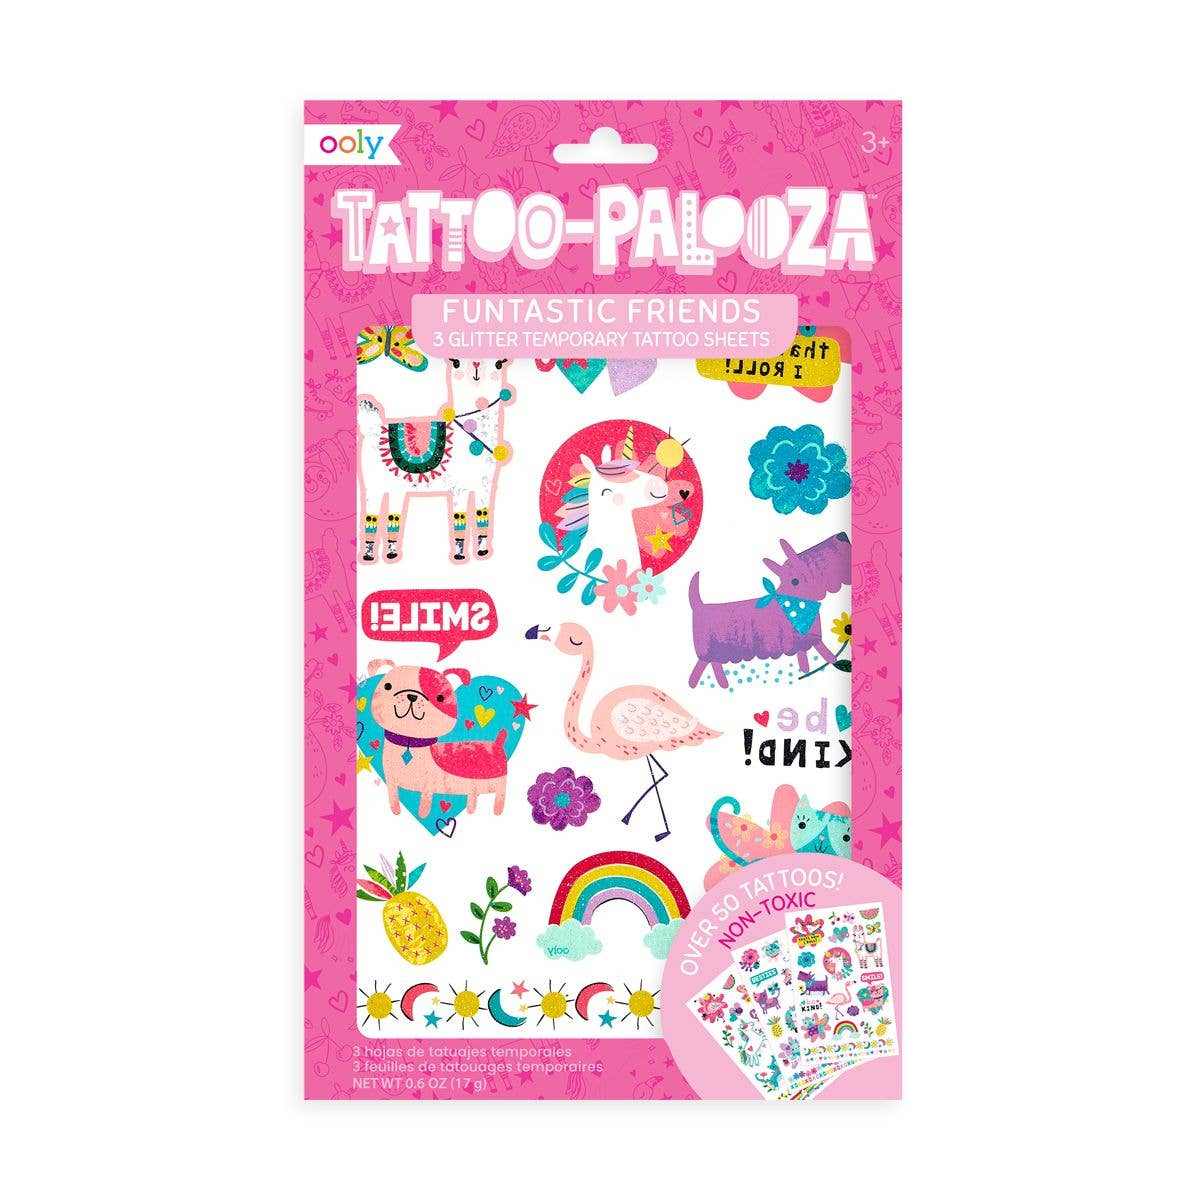 Tattoo Palooza Temporary Glitter Tattoo: Funtastic Friends